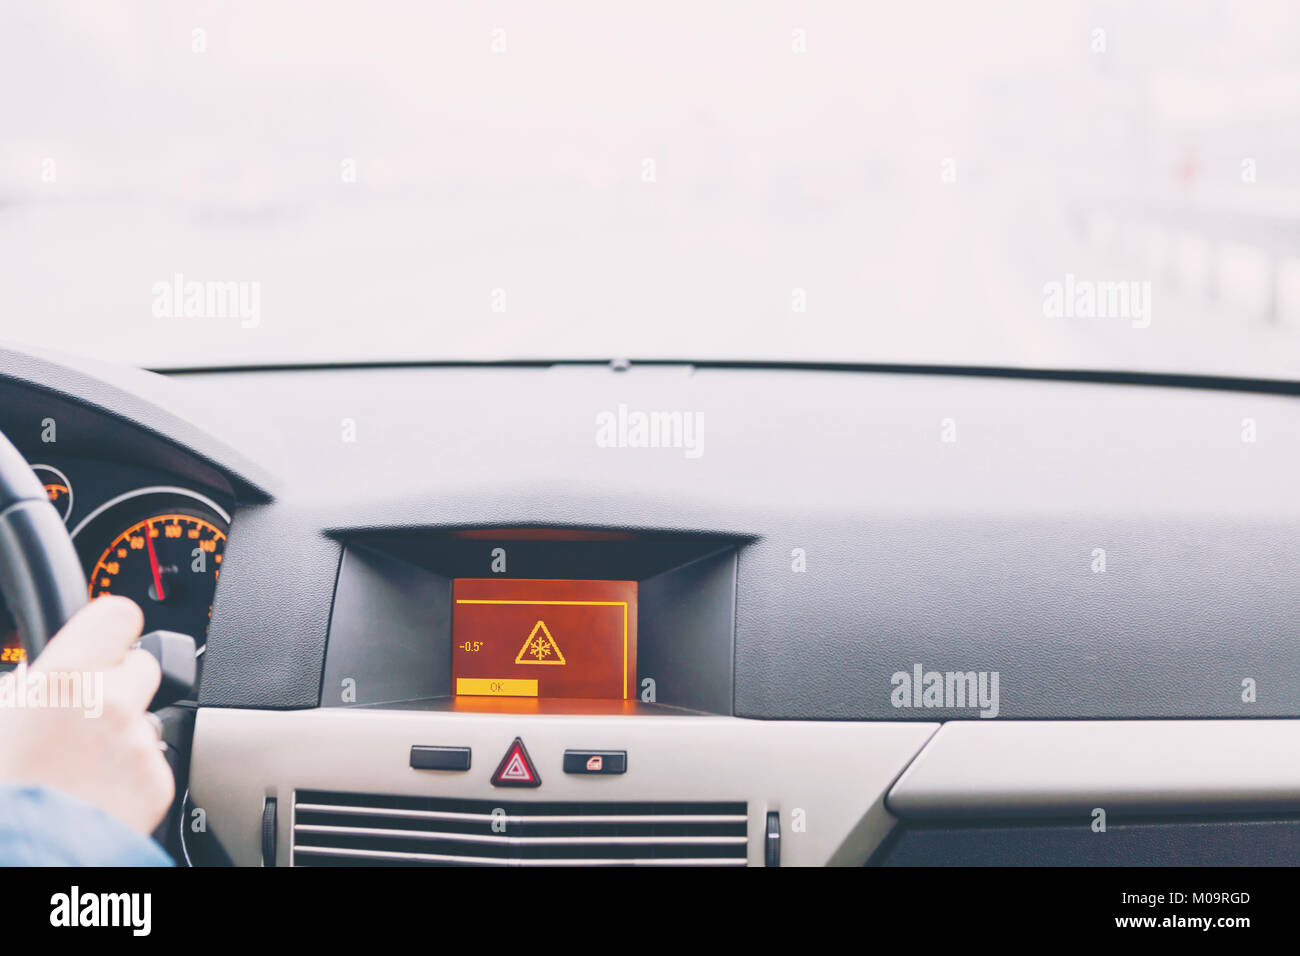 Slippery road warning on car display, car interior point of view - Stock Image